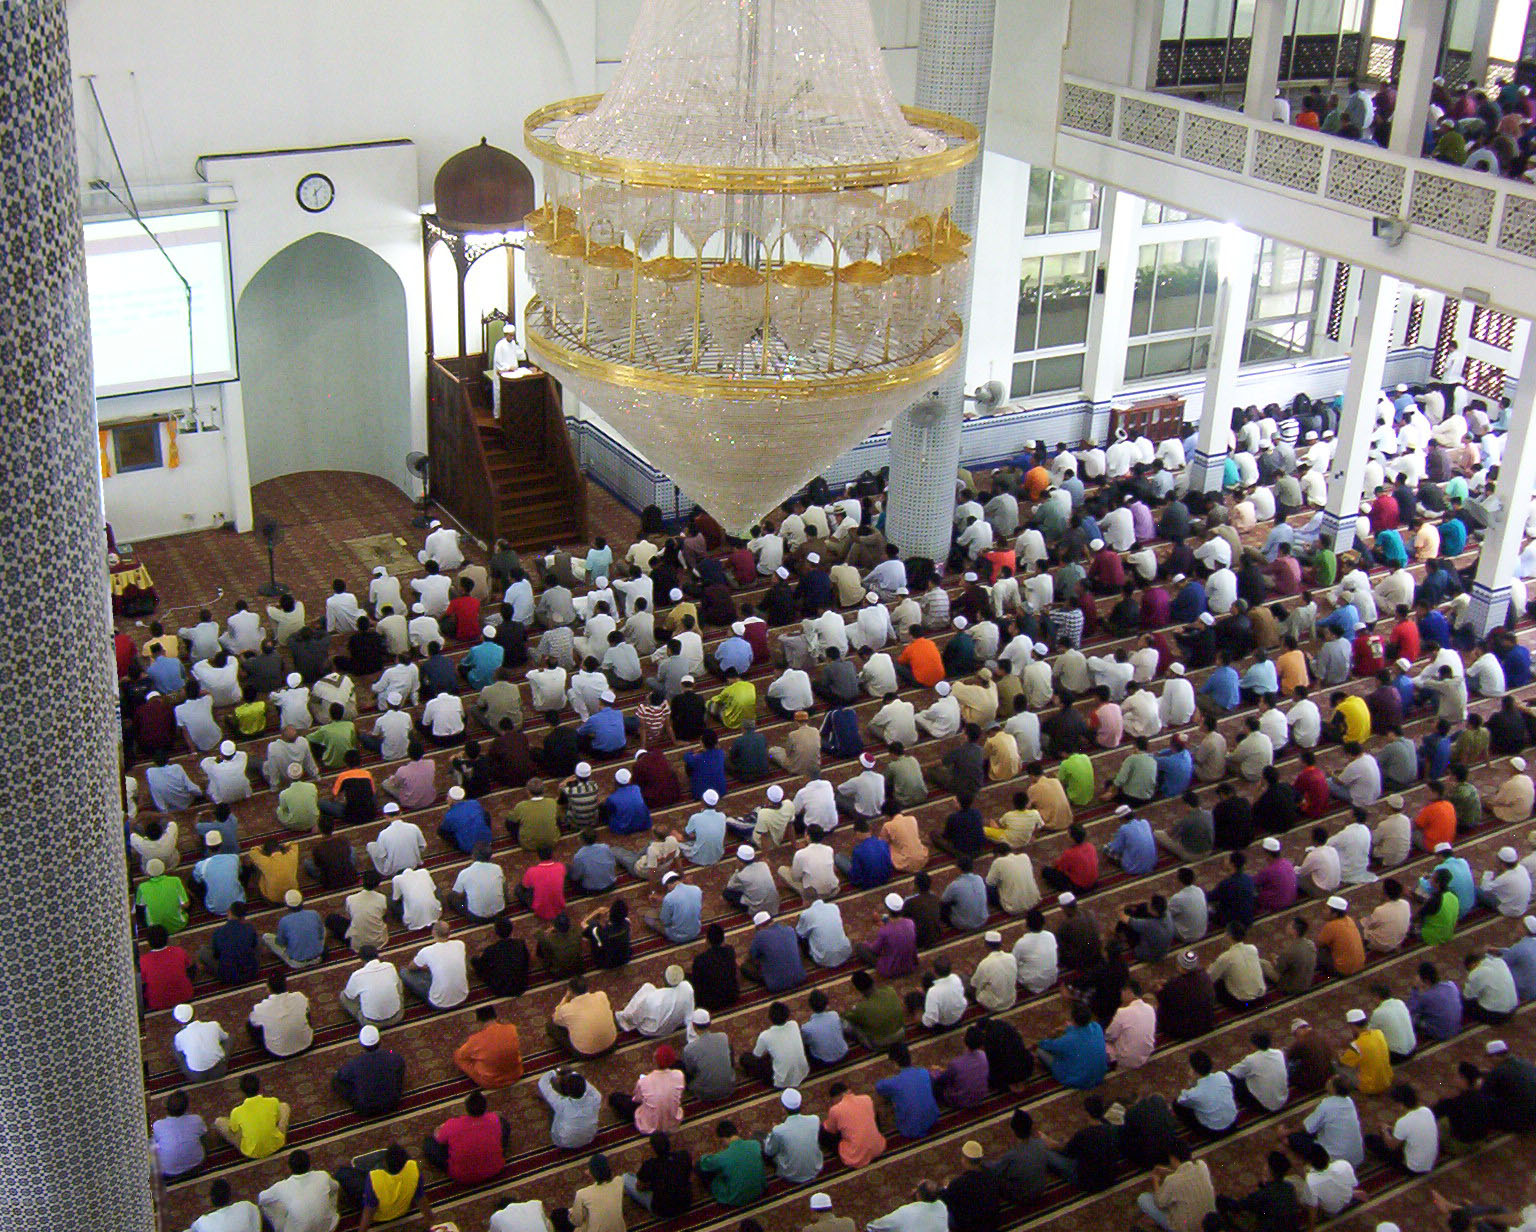 Muslim Friday prayer at a mosque in Malaysia